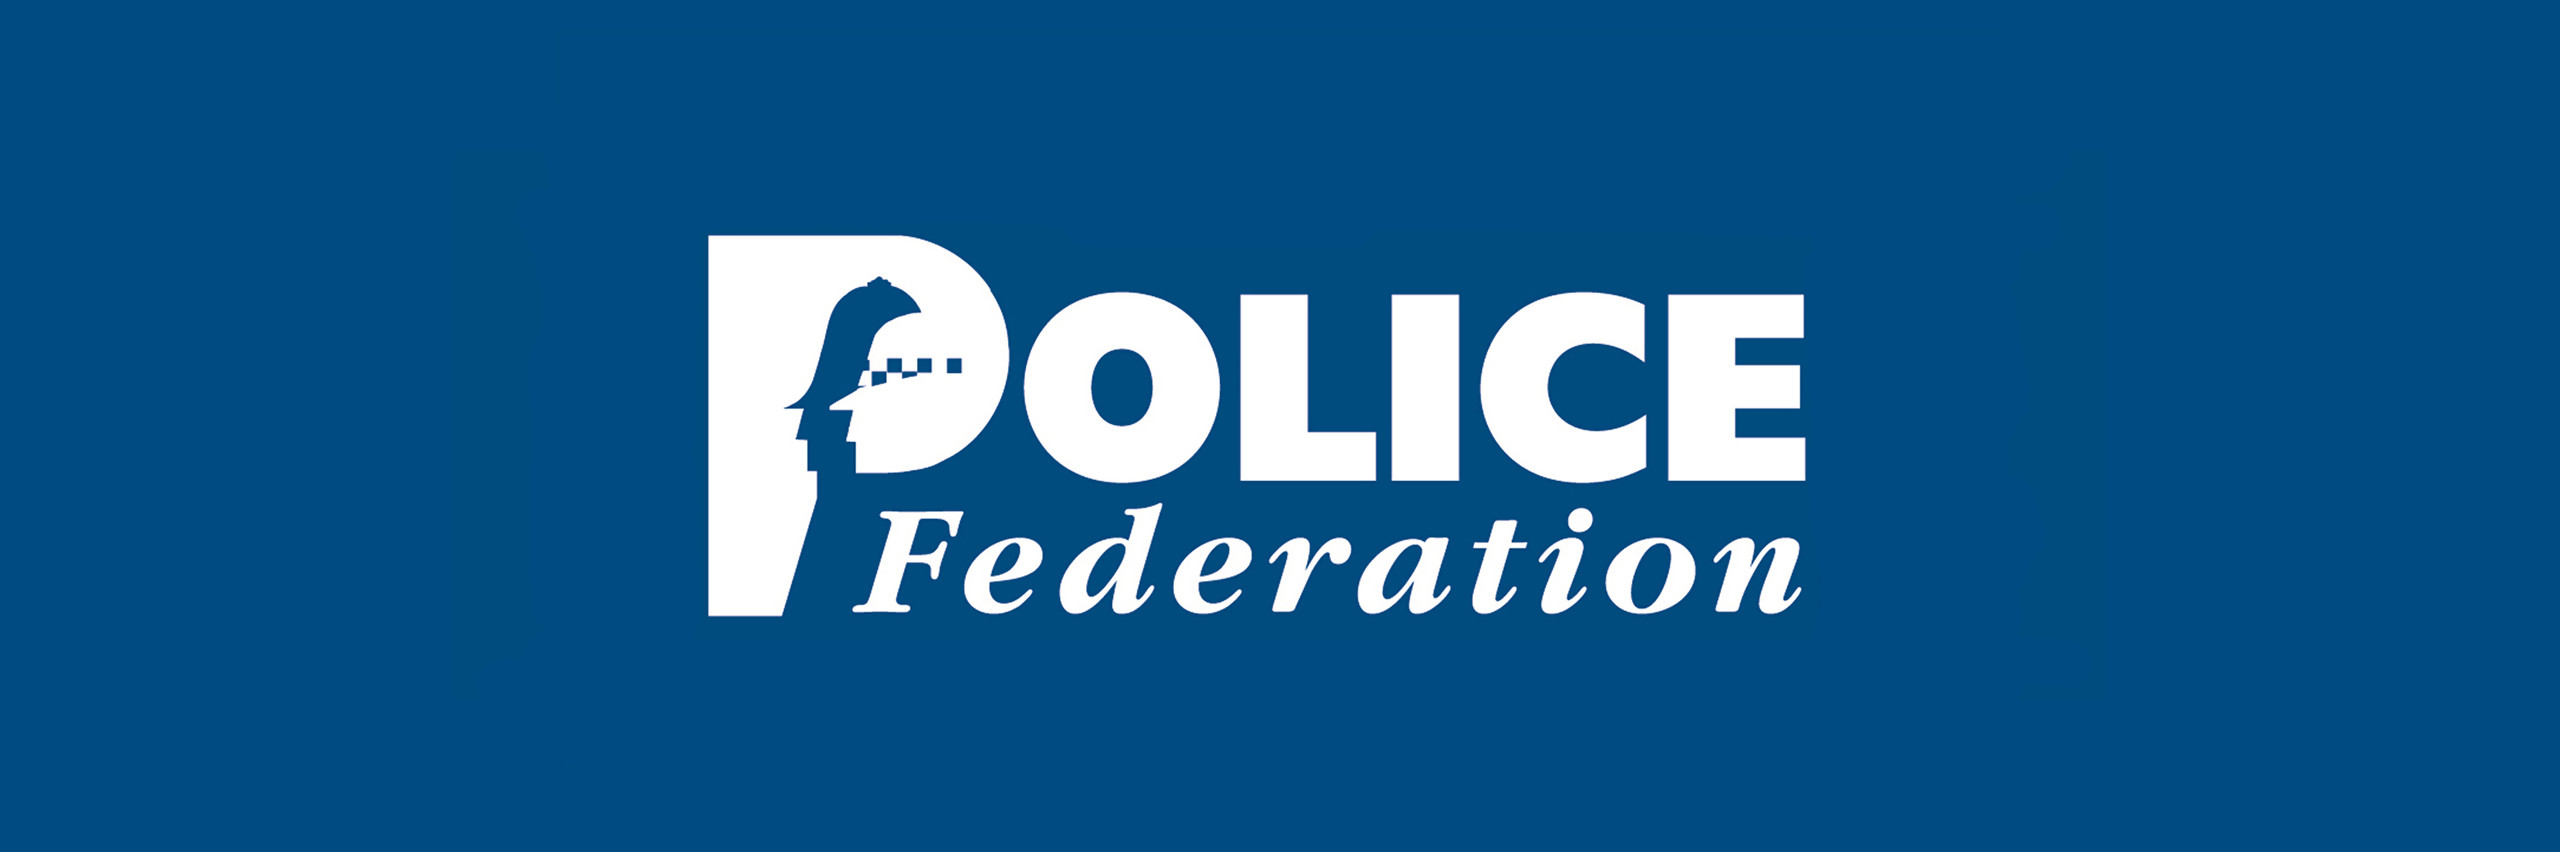 Police Federation online discussions